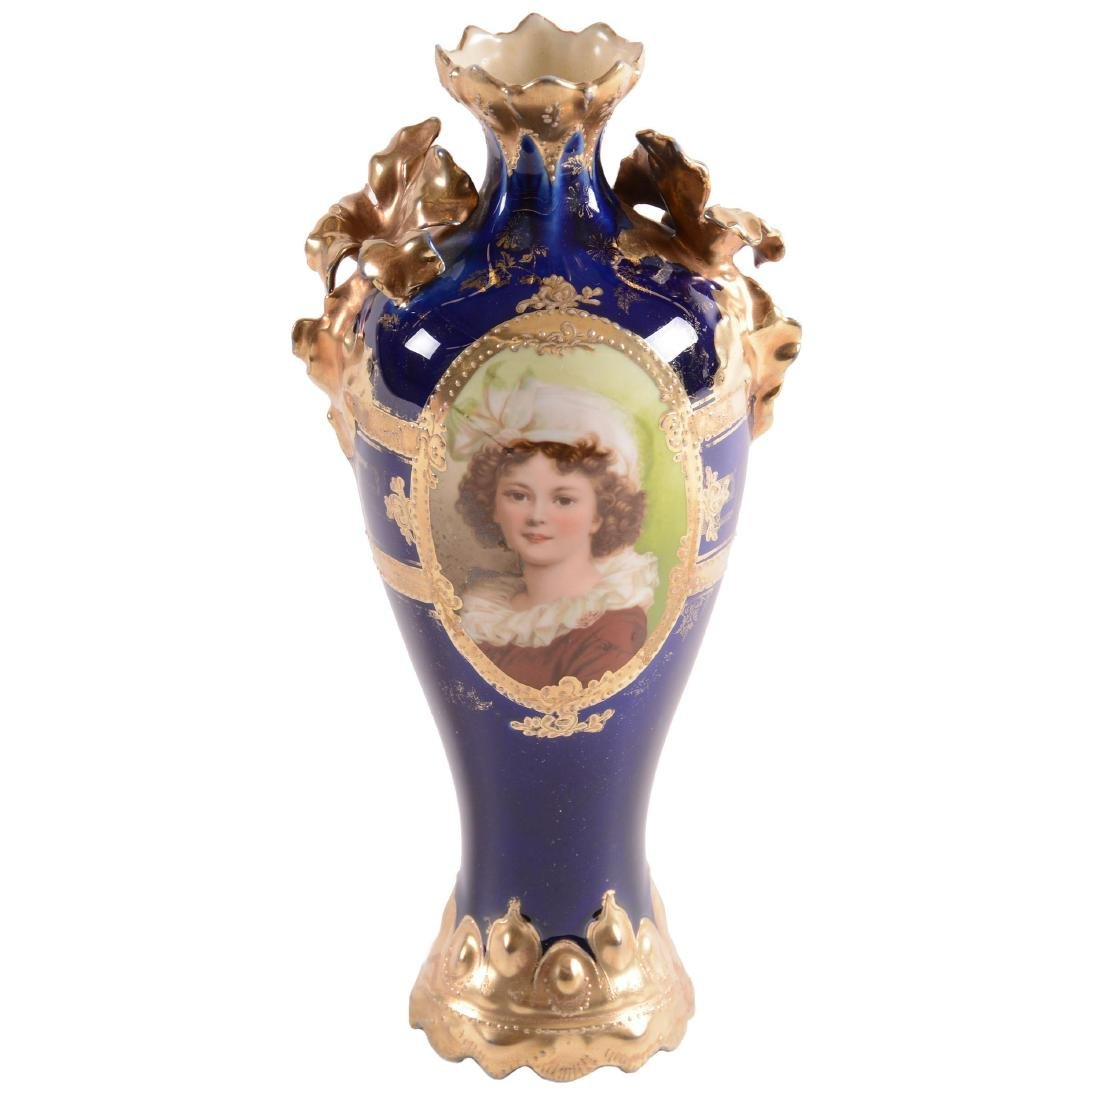 Vase - Unmarked Royal Vienna